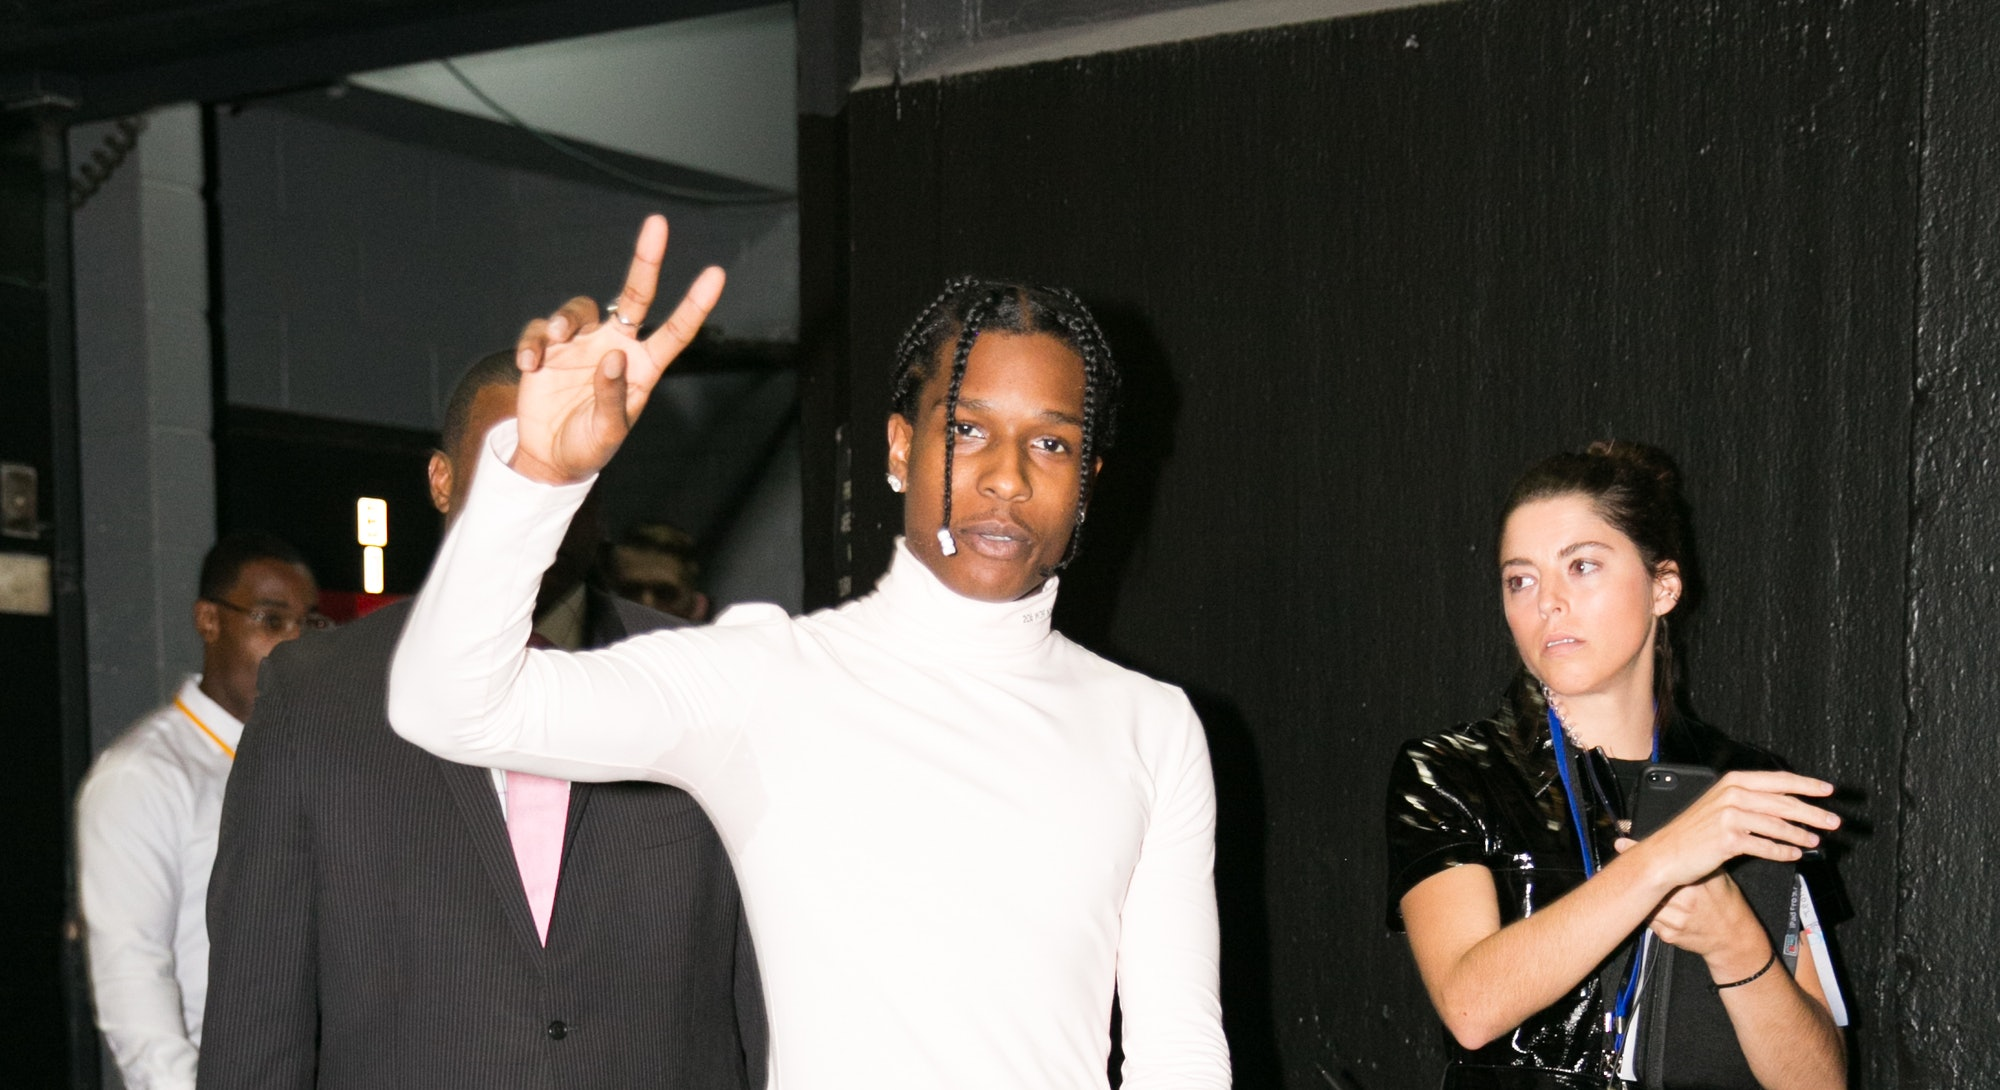 ASAP Rocky attends Calvin Klein show at New York Fashion Week, in New York City, US, on 11 september...